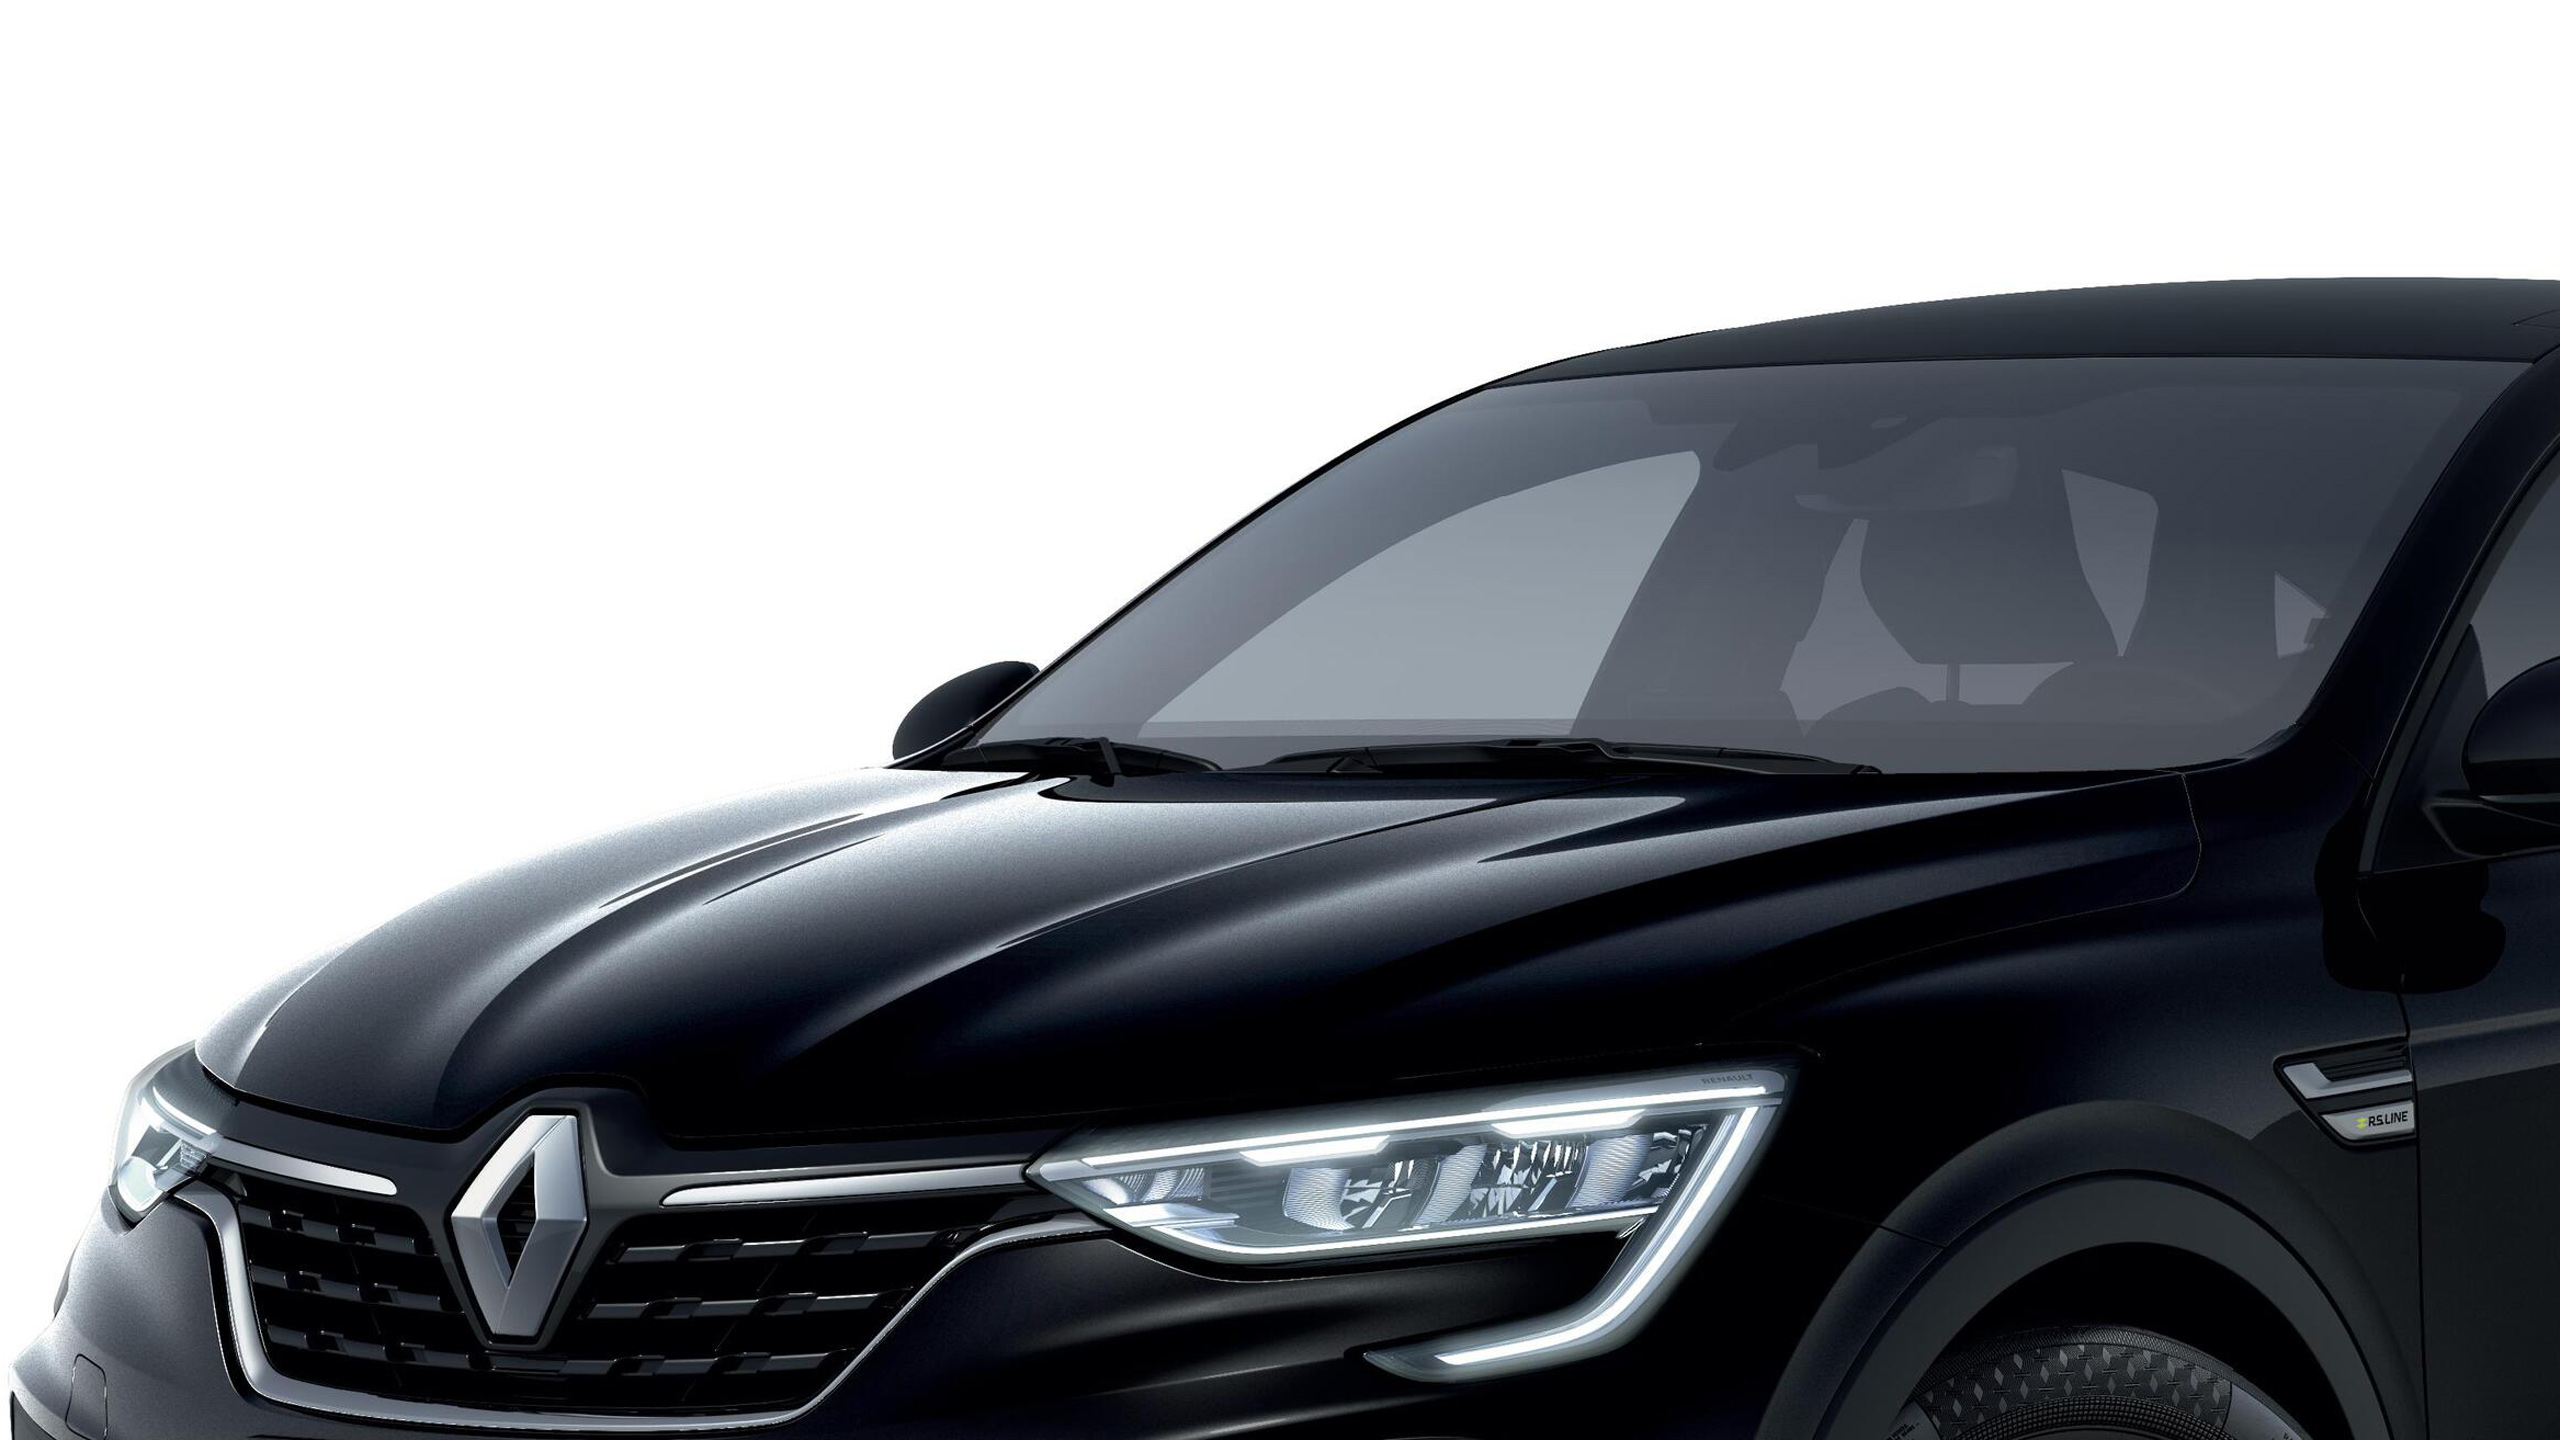 Automatic headlights and rain sensitive front wipers